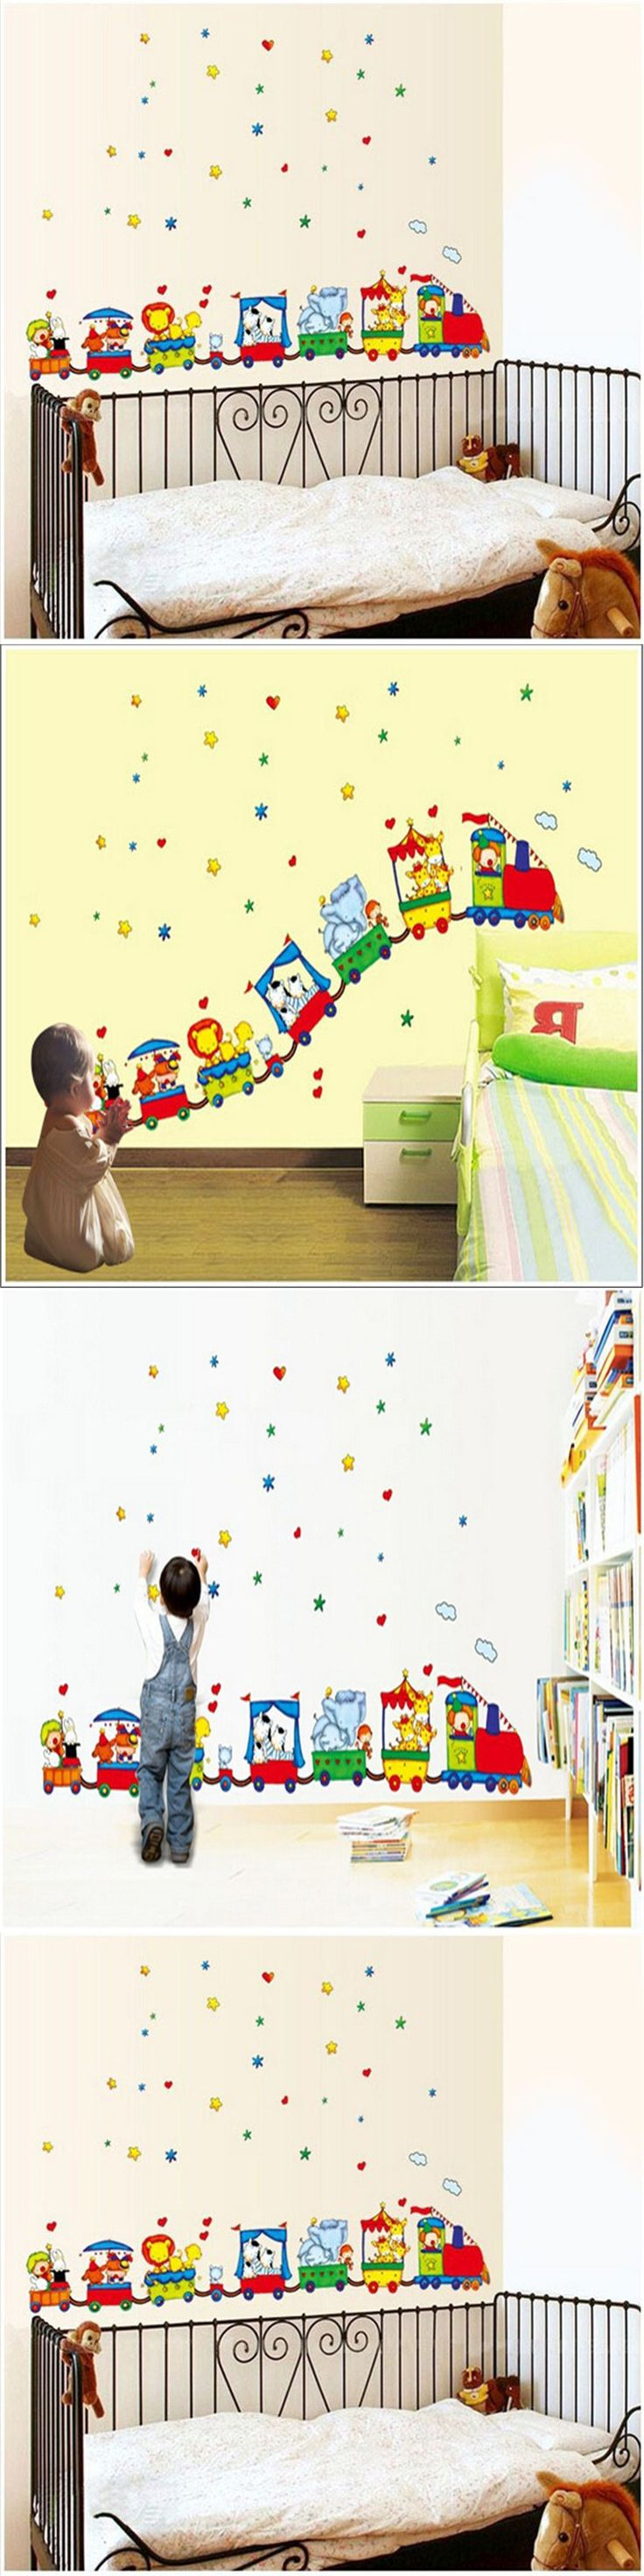 Unique detachable side rail with dear kids letter idea feat cool - Animal Circus Train Children Diy Removable Wall Stickers Parlor Kids Bedroom Home House Decoration